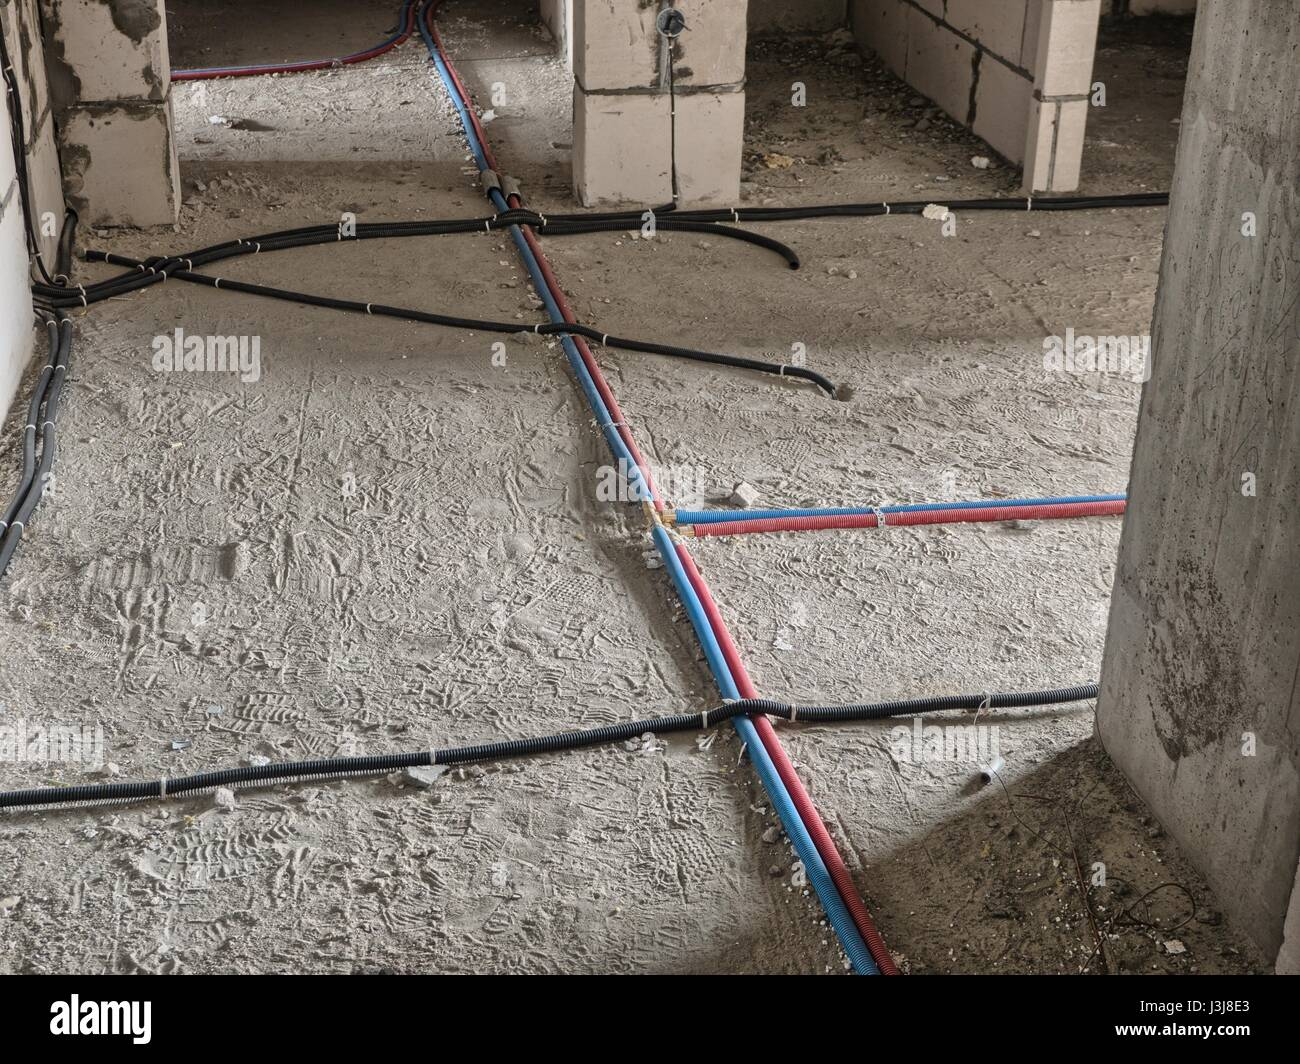 Electrical wiring on the floor in the building under construction ...